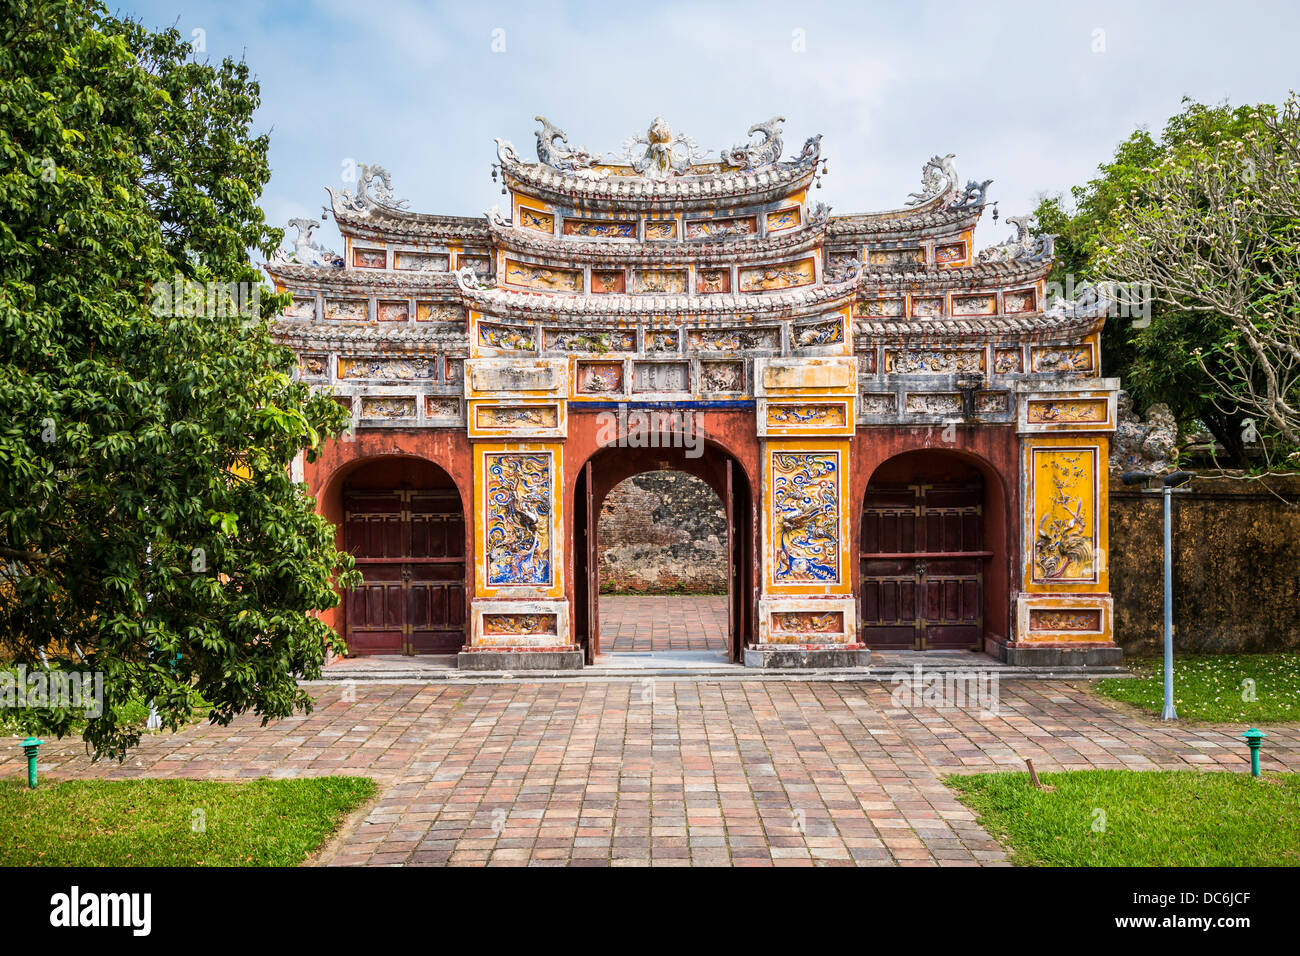 an ornate gate at the historic old imperial city in hue vietnam stock photo royalty free image. Black Bedroom Furniture Sets. Home Design Ideas